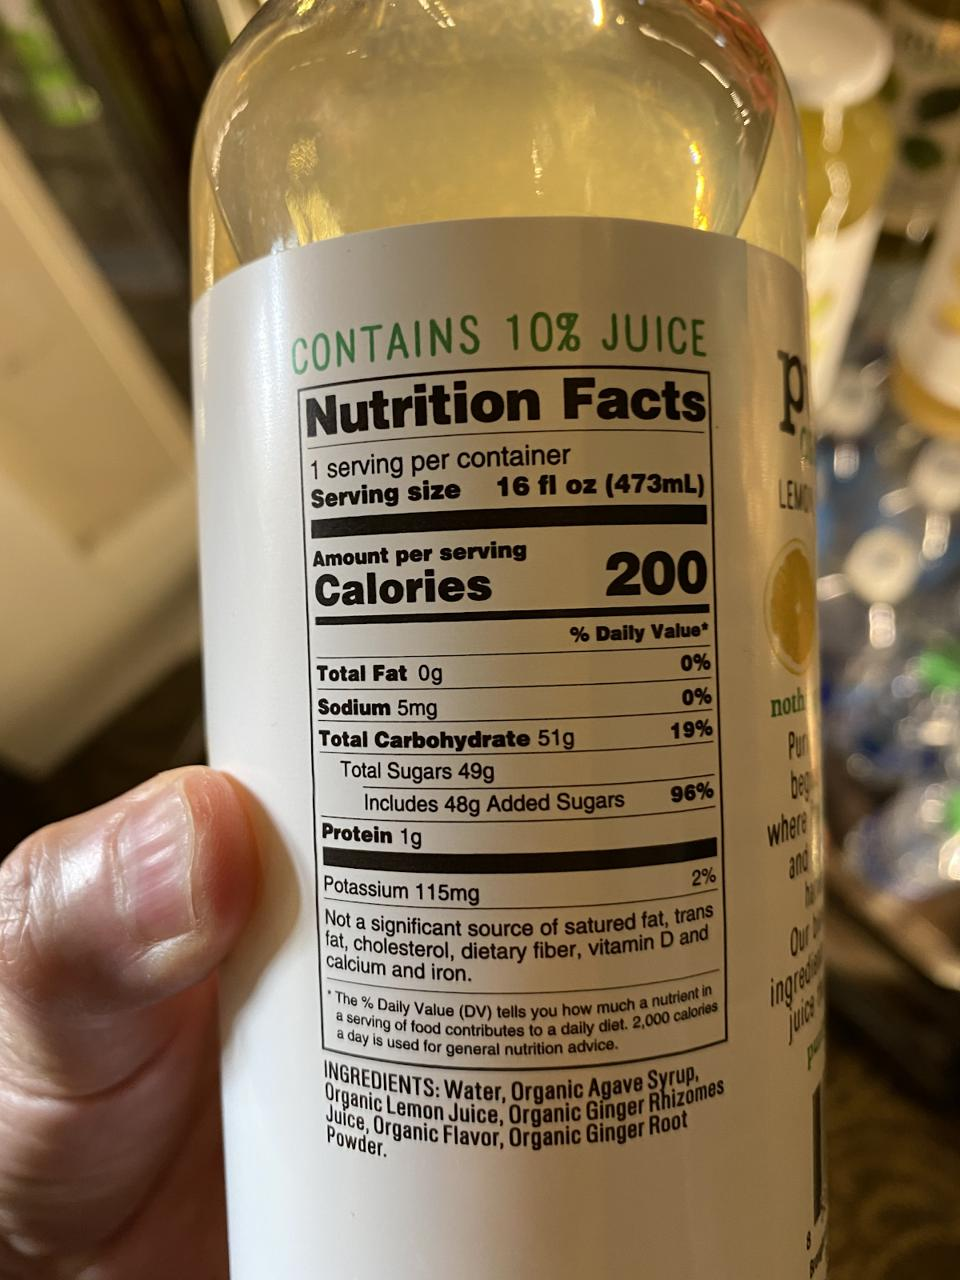 A hand holding a bottle showing the nutritional information on a juice drink.